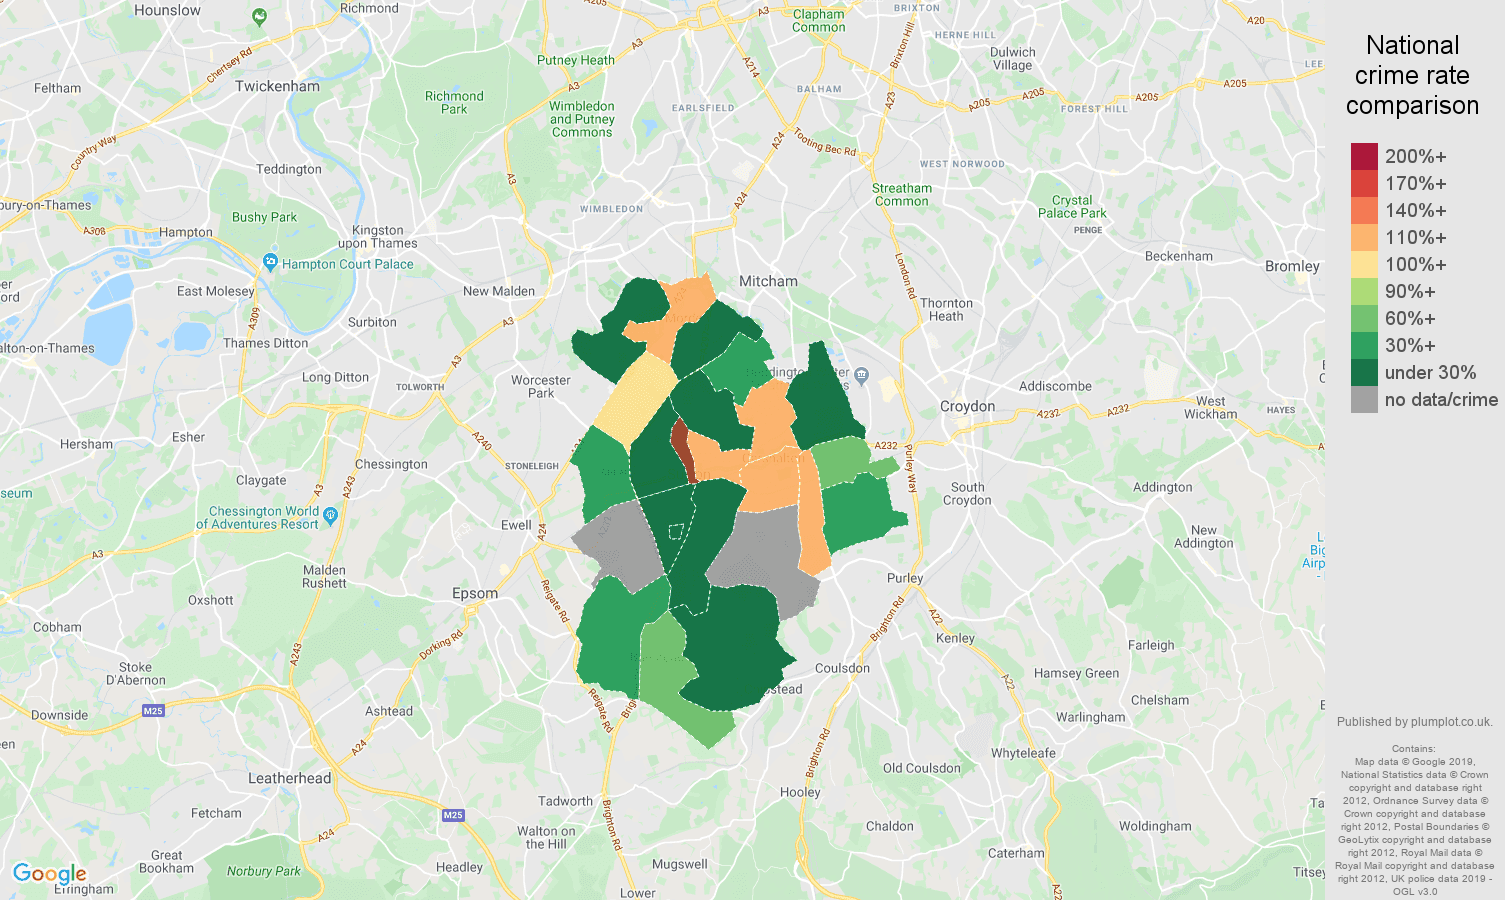 Sutton shoplifting crime rate comparison map